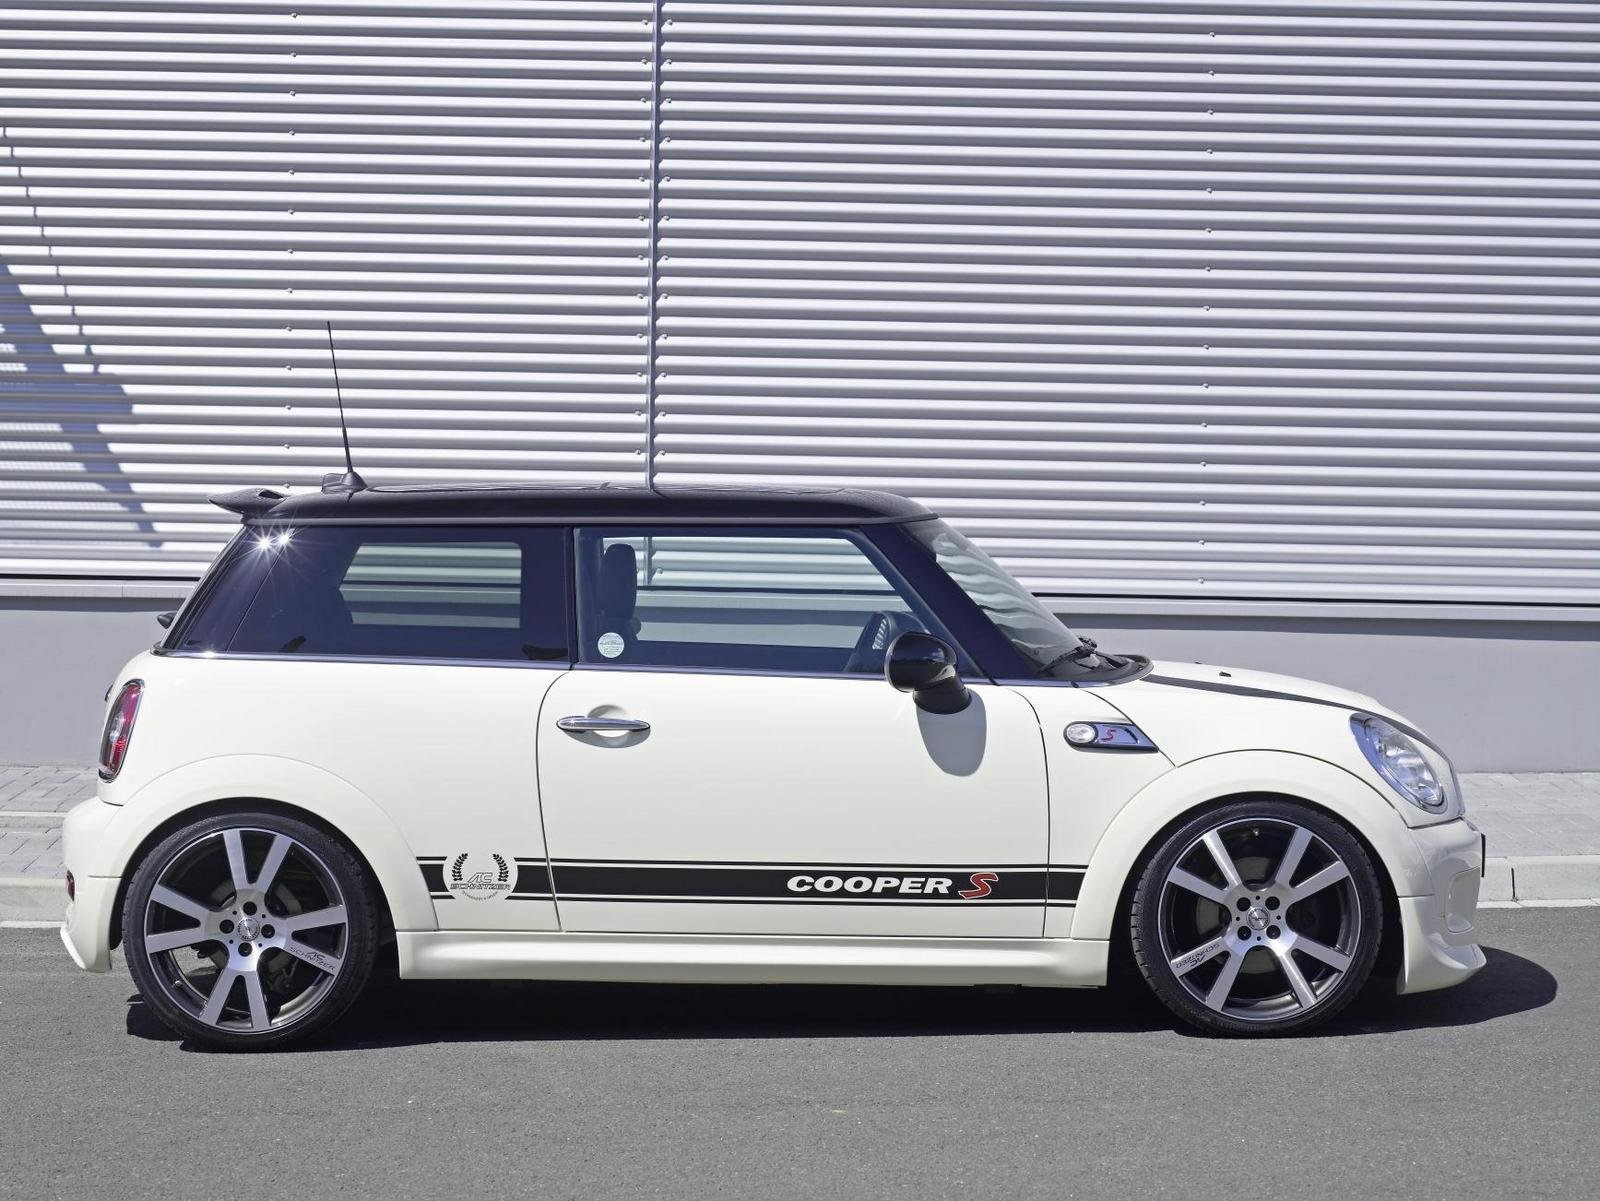 2007 mini cooper s by ac schnitzer picture 197232 car review top speed. Black Bedroom Furniture Sets. Home Design Ideas